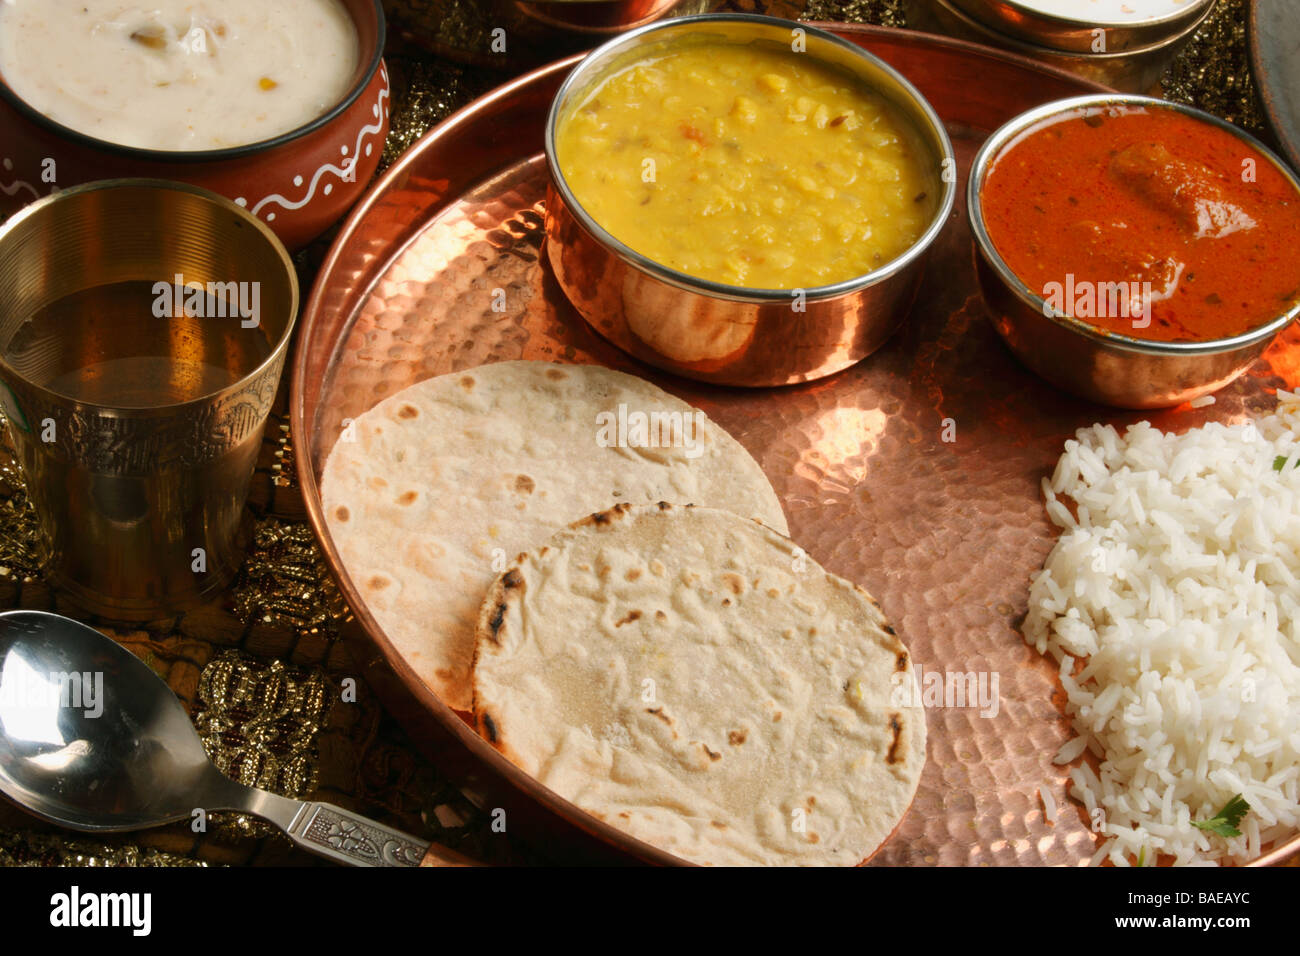 Bhakri is a round flat unleavened bread often used in gujarath and maharashtra - Stock Image